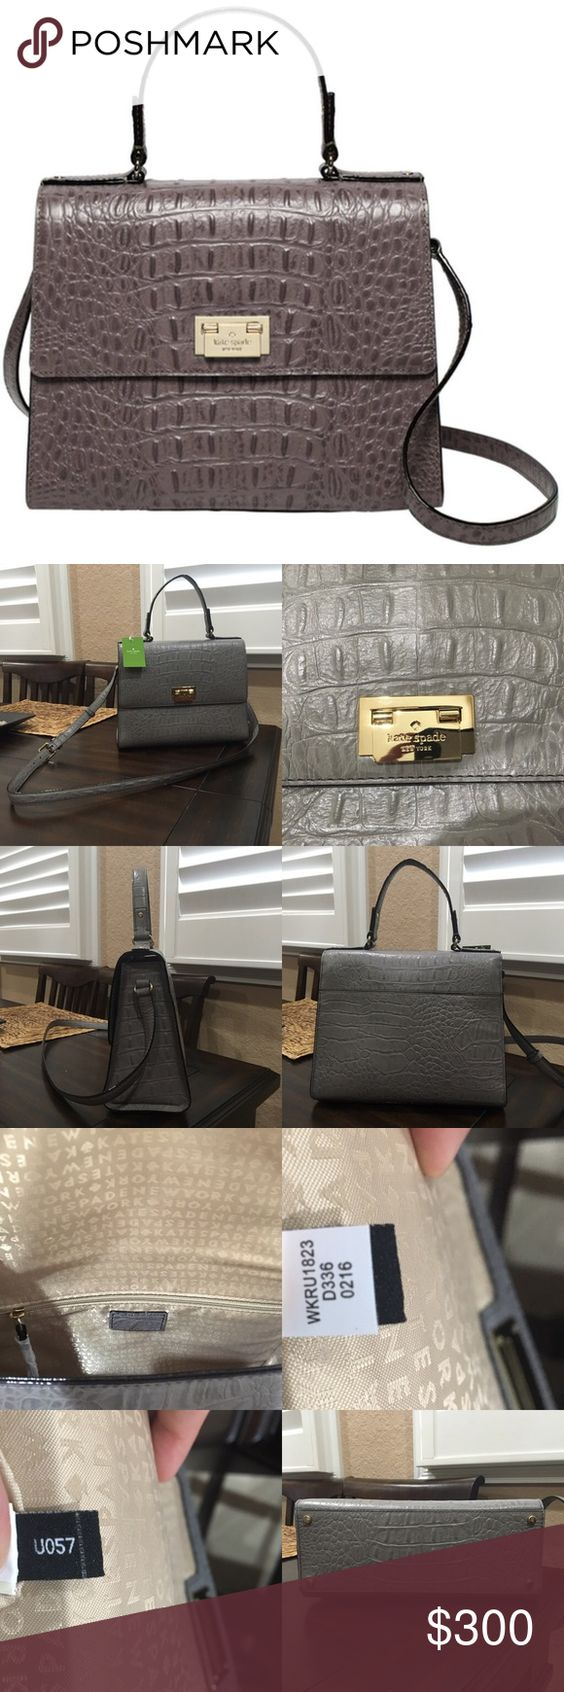 KATE SPADE ORCHARD VALLEY DORIS PURSE * 100% Authentic * Brand new- No defects.  * Perfect for all seasons! Especially Fall!  * Completely sold out online and in stores!  * Please see last photo for more details! (FROM KATESPADE.COM) kate spade Bags Shoulder Bags